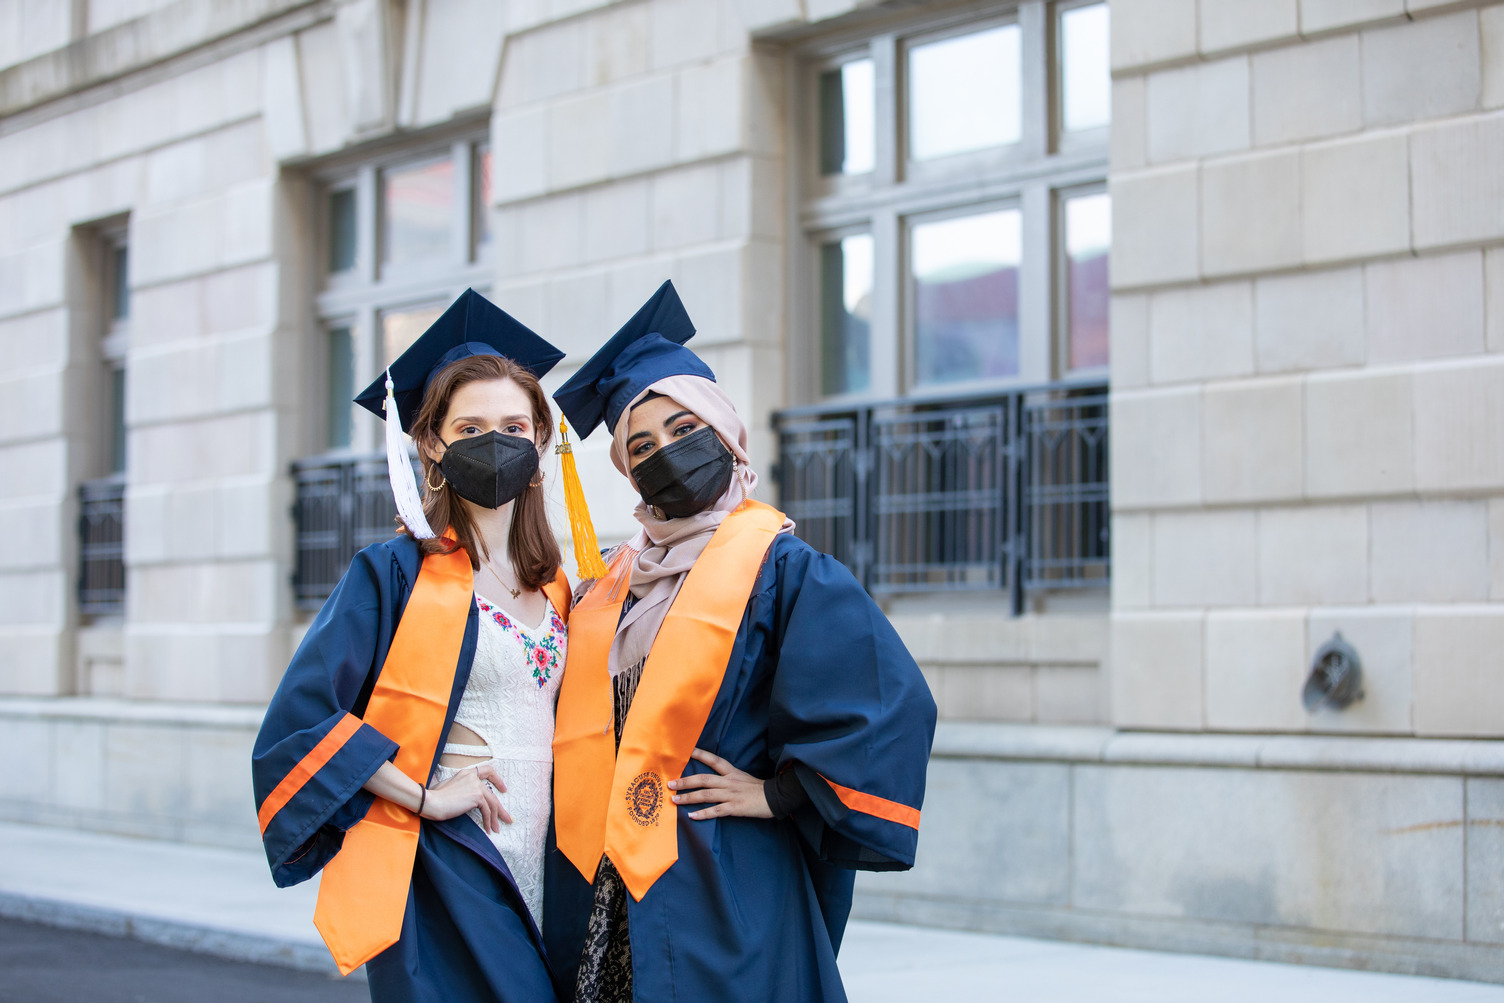 two students posing together in their caps and gowns